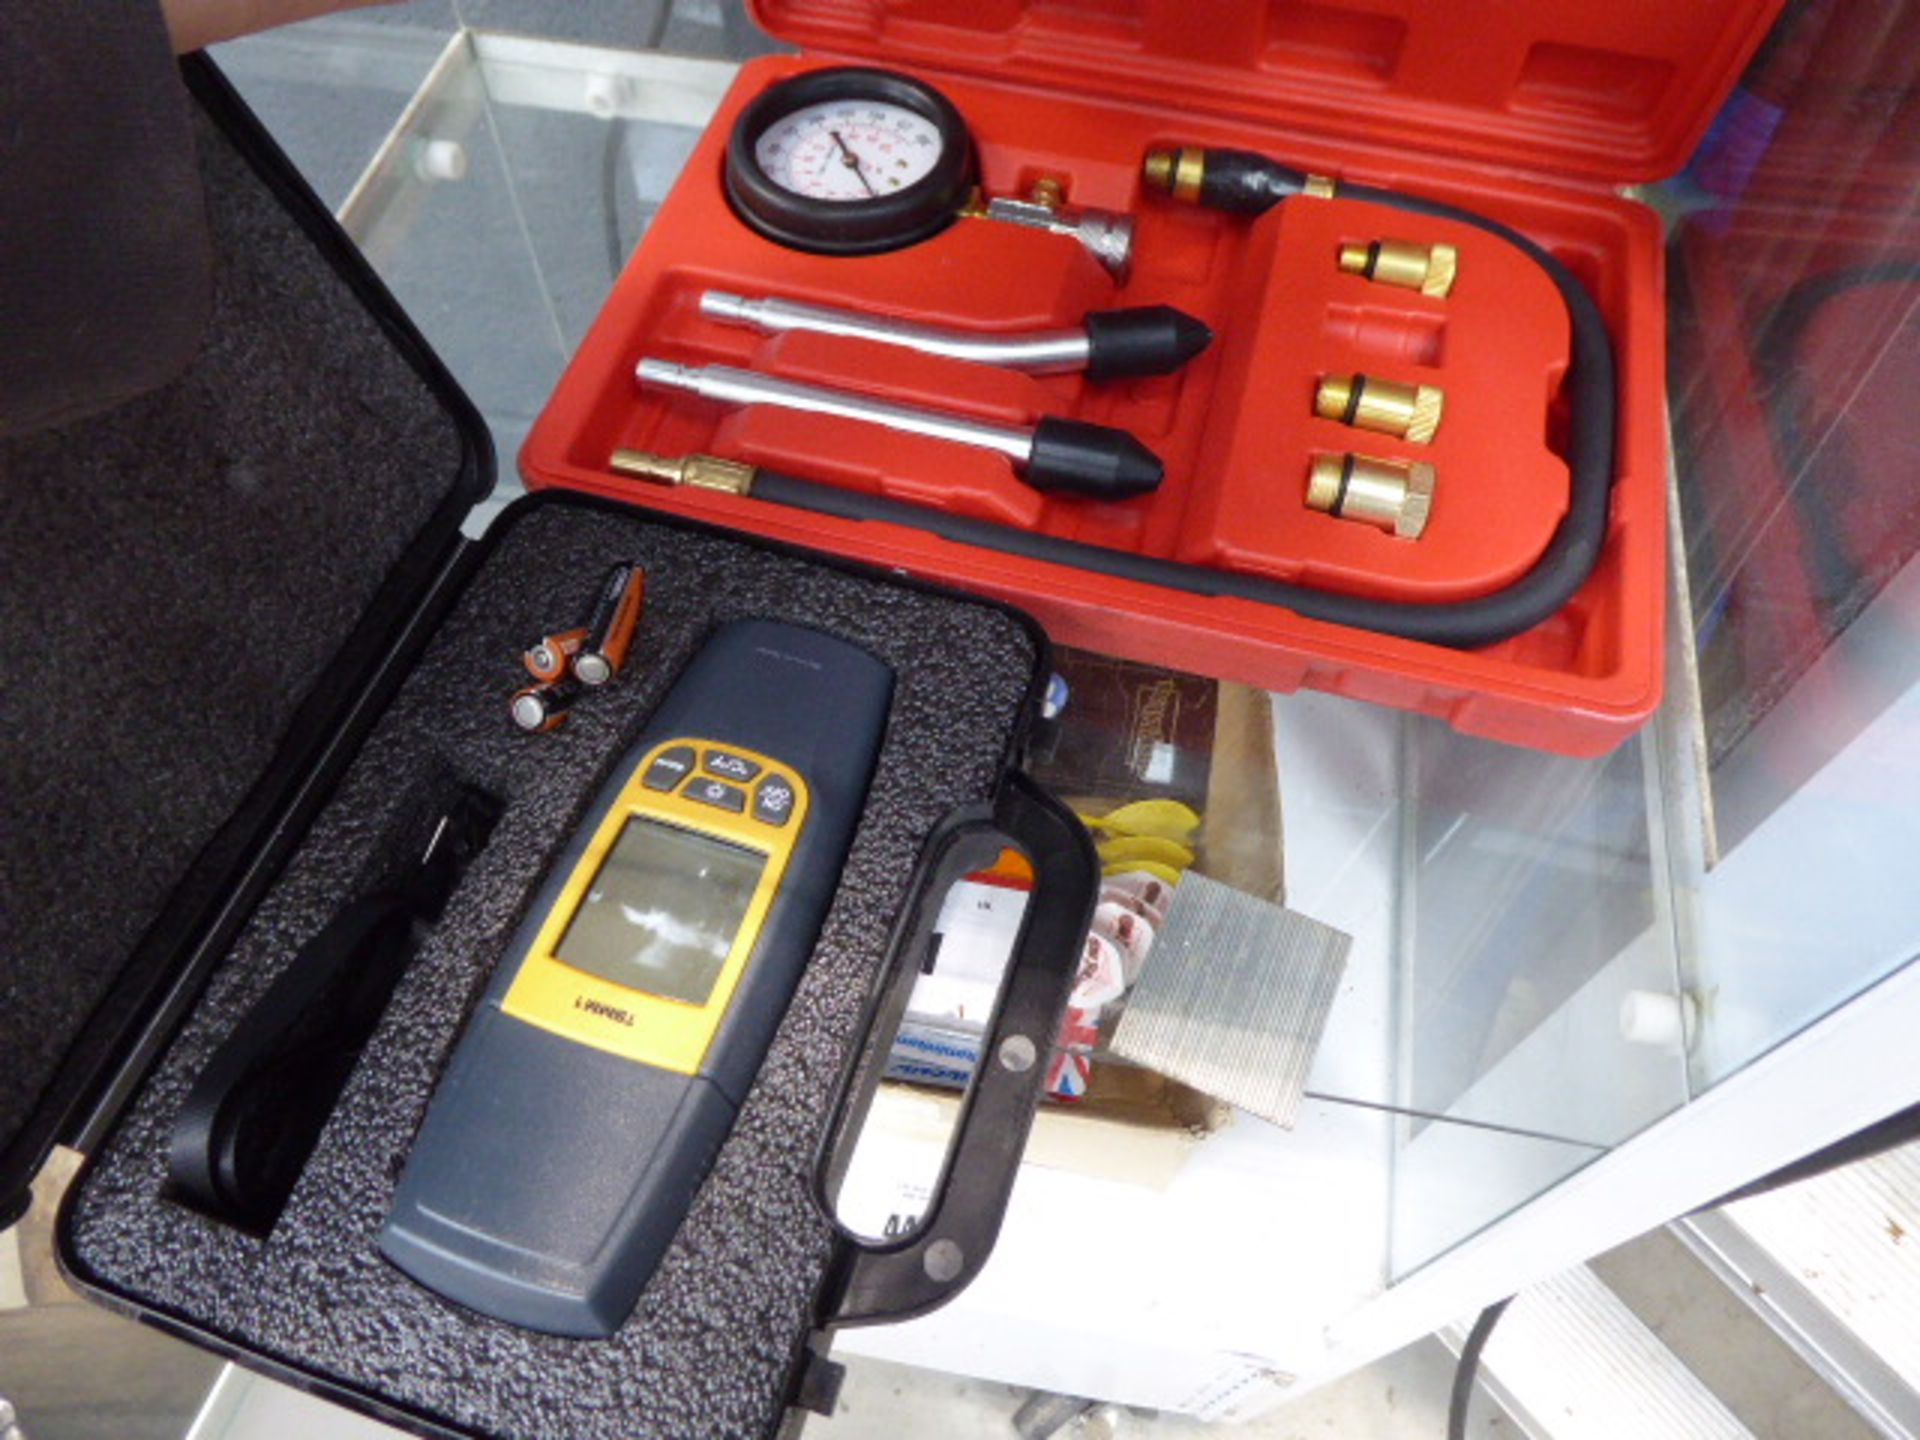 Lot 4471 - Environmental instrument and pressure tester